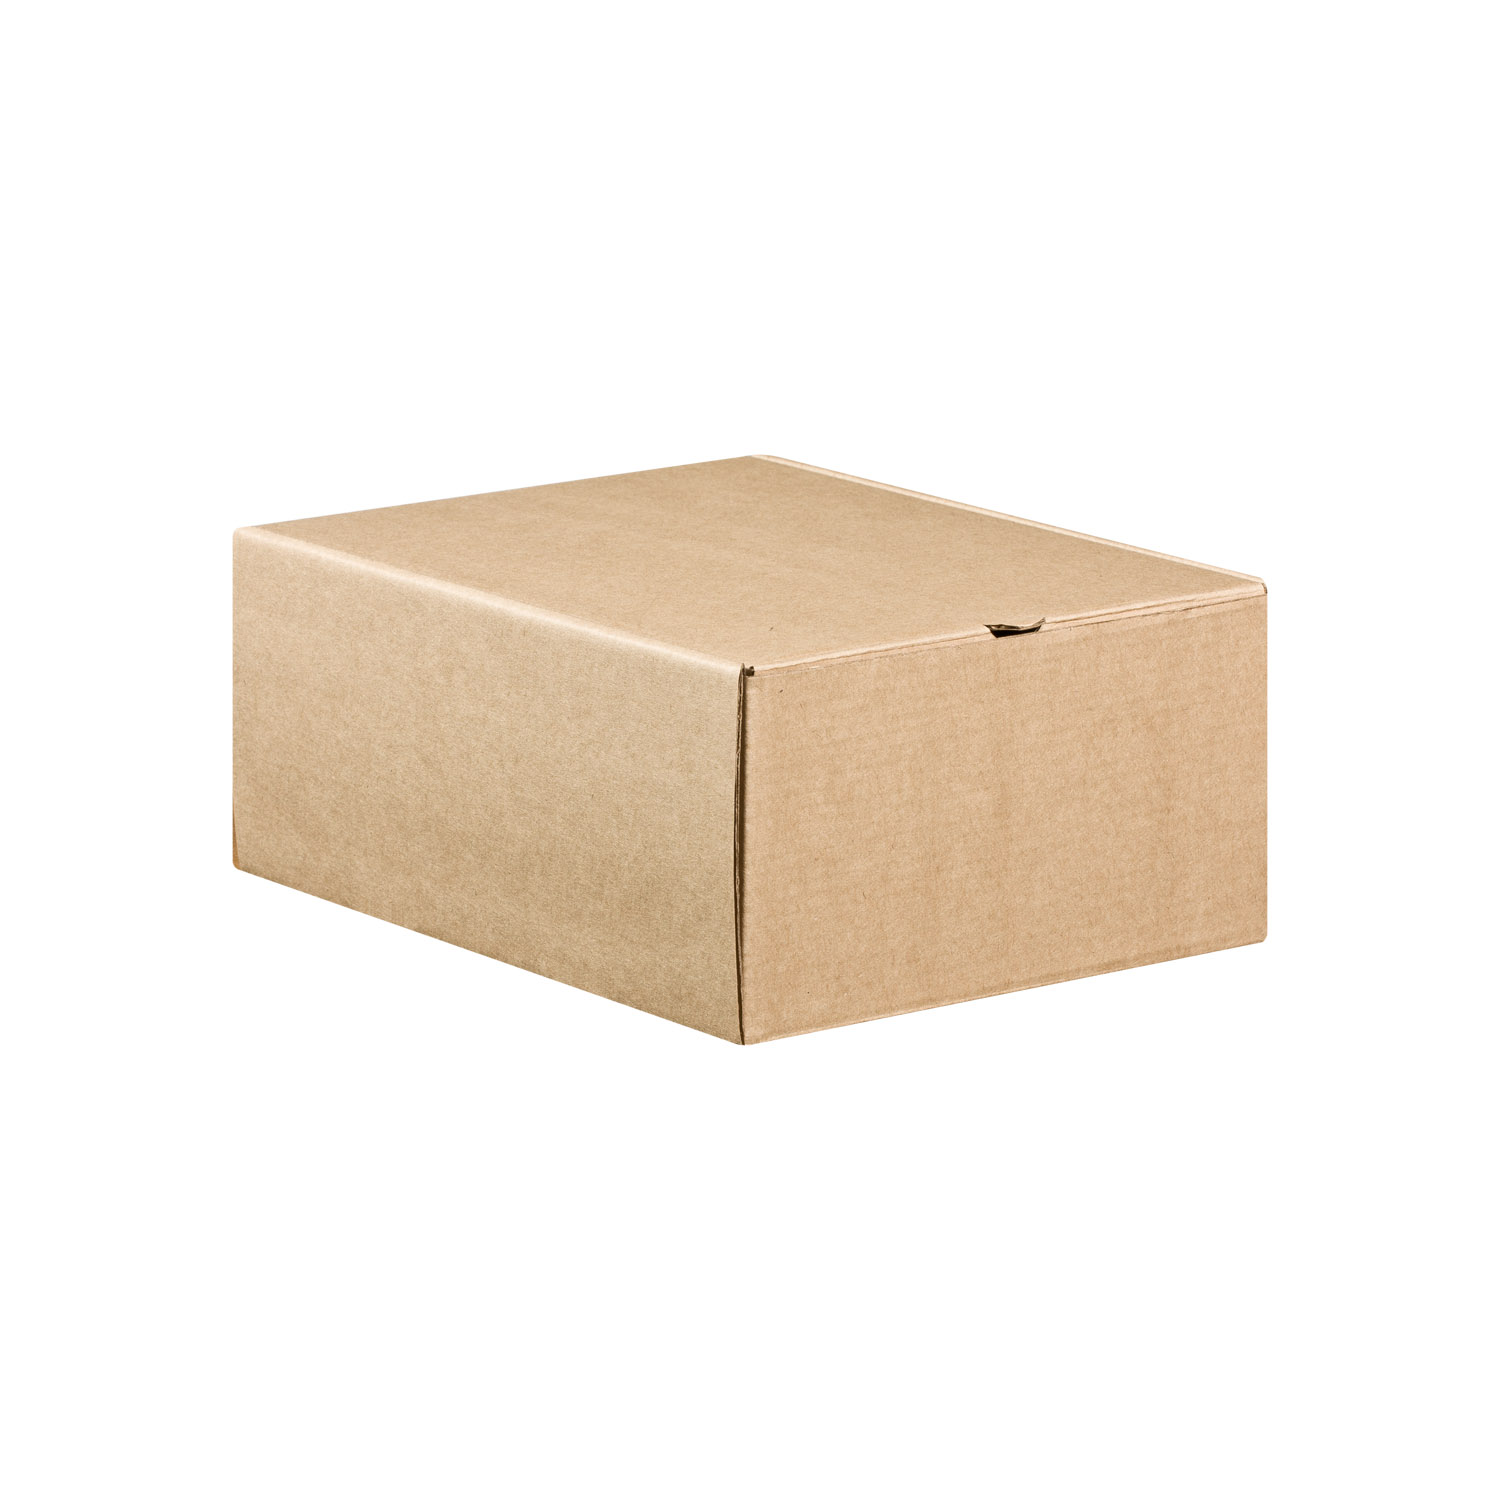 Boxes product categories merrypak corrugated boxes reheart Choice Image